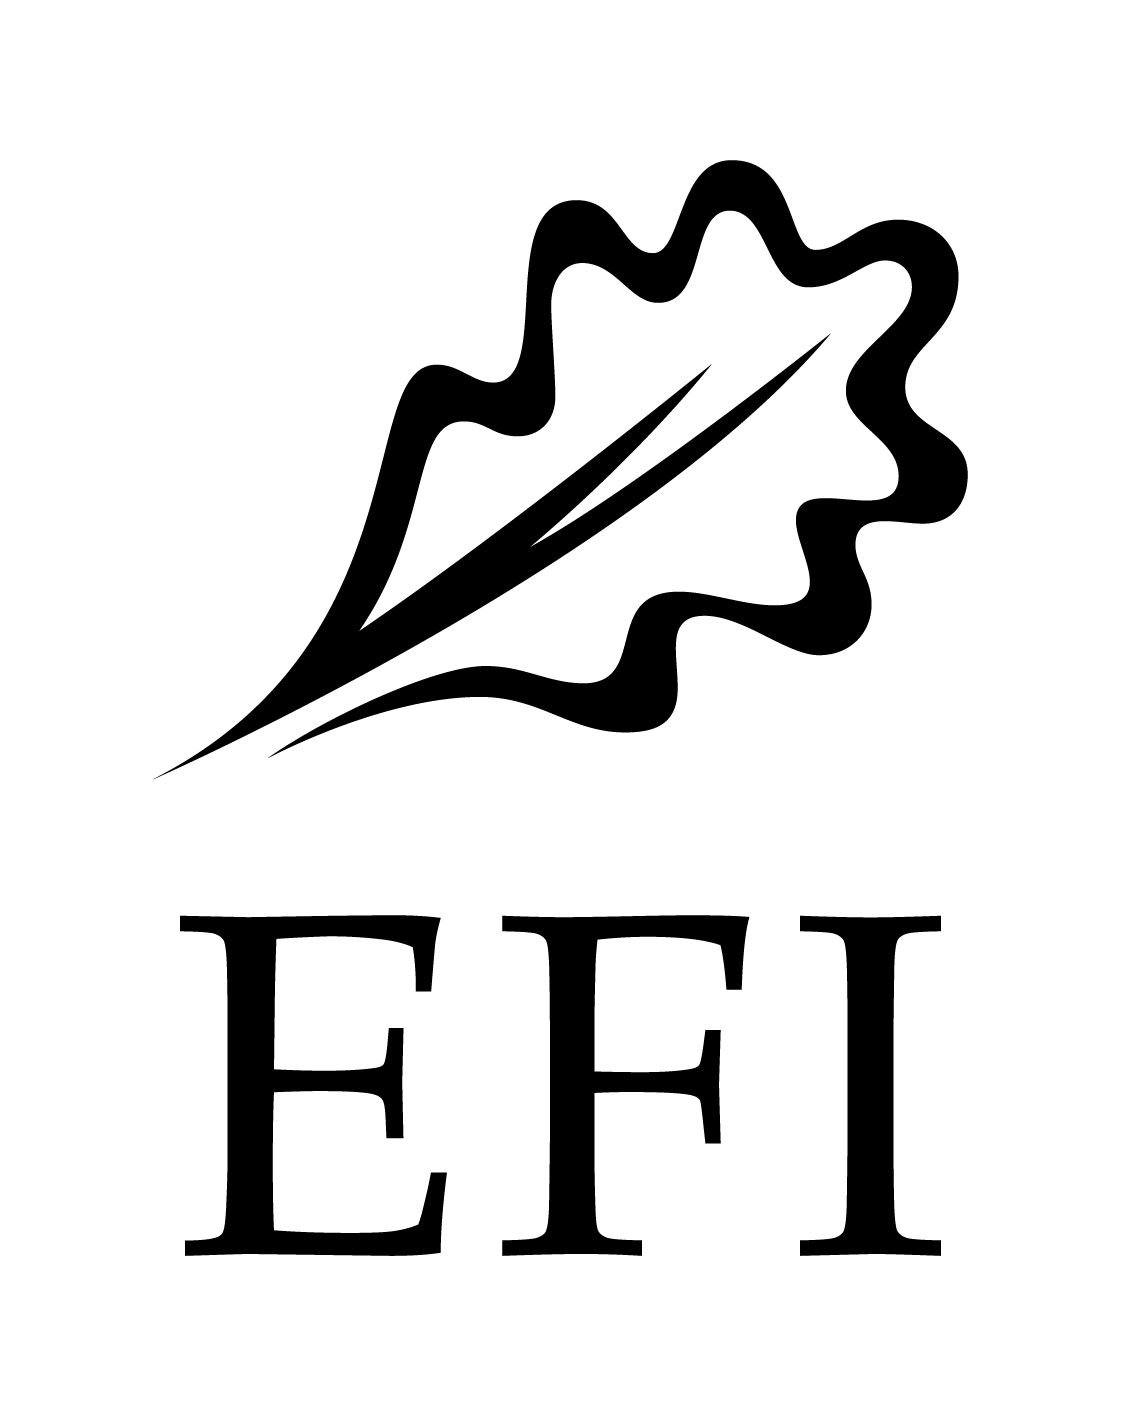 European forest institute wikipedia. How to use png files